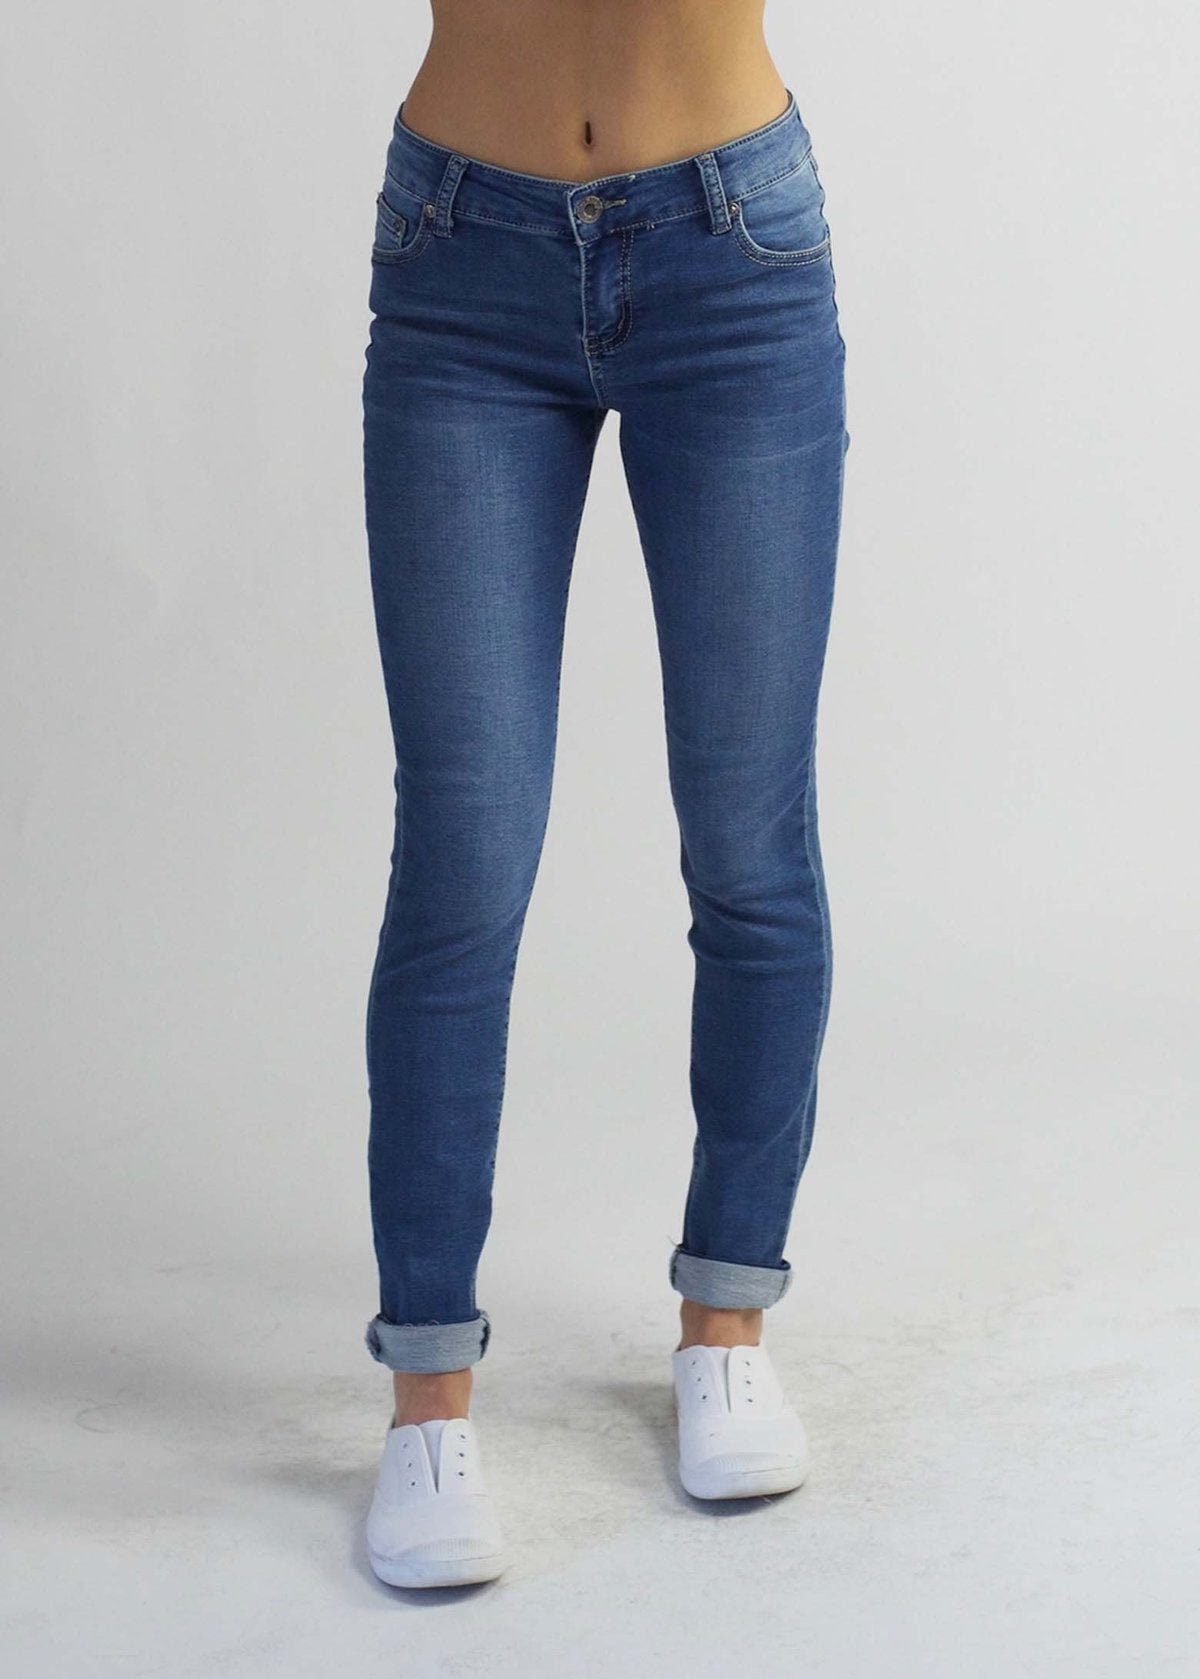 Carousel Vintage Roll Up Jean Blue